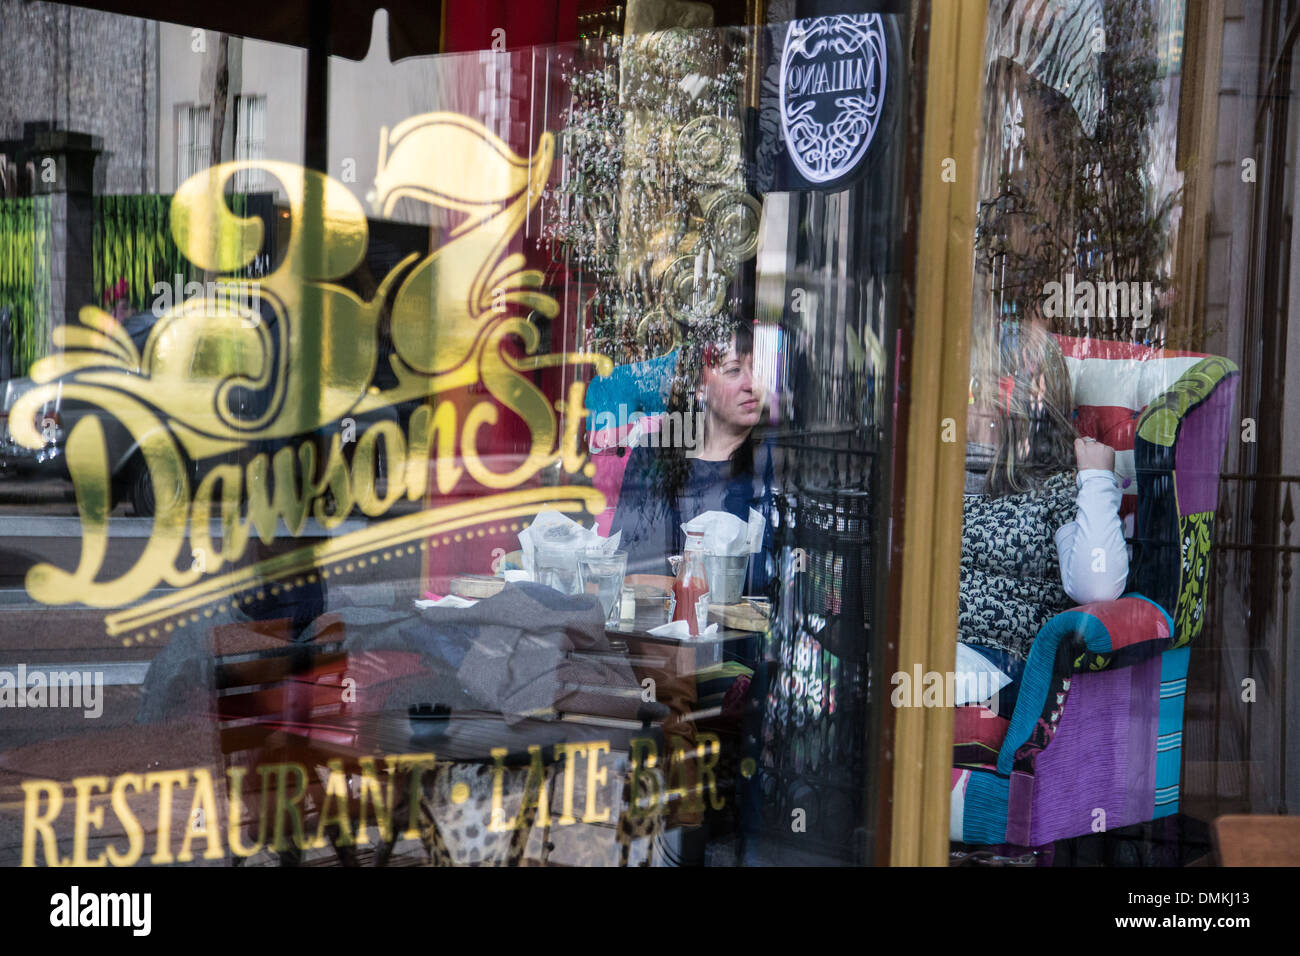 YOUNG WOMEN AT A TABLE IN THE RESTAURANT THE 37 DAWSON STREET, DUBLIN, IRELAND - Stock Image